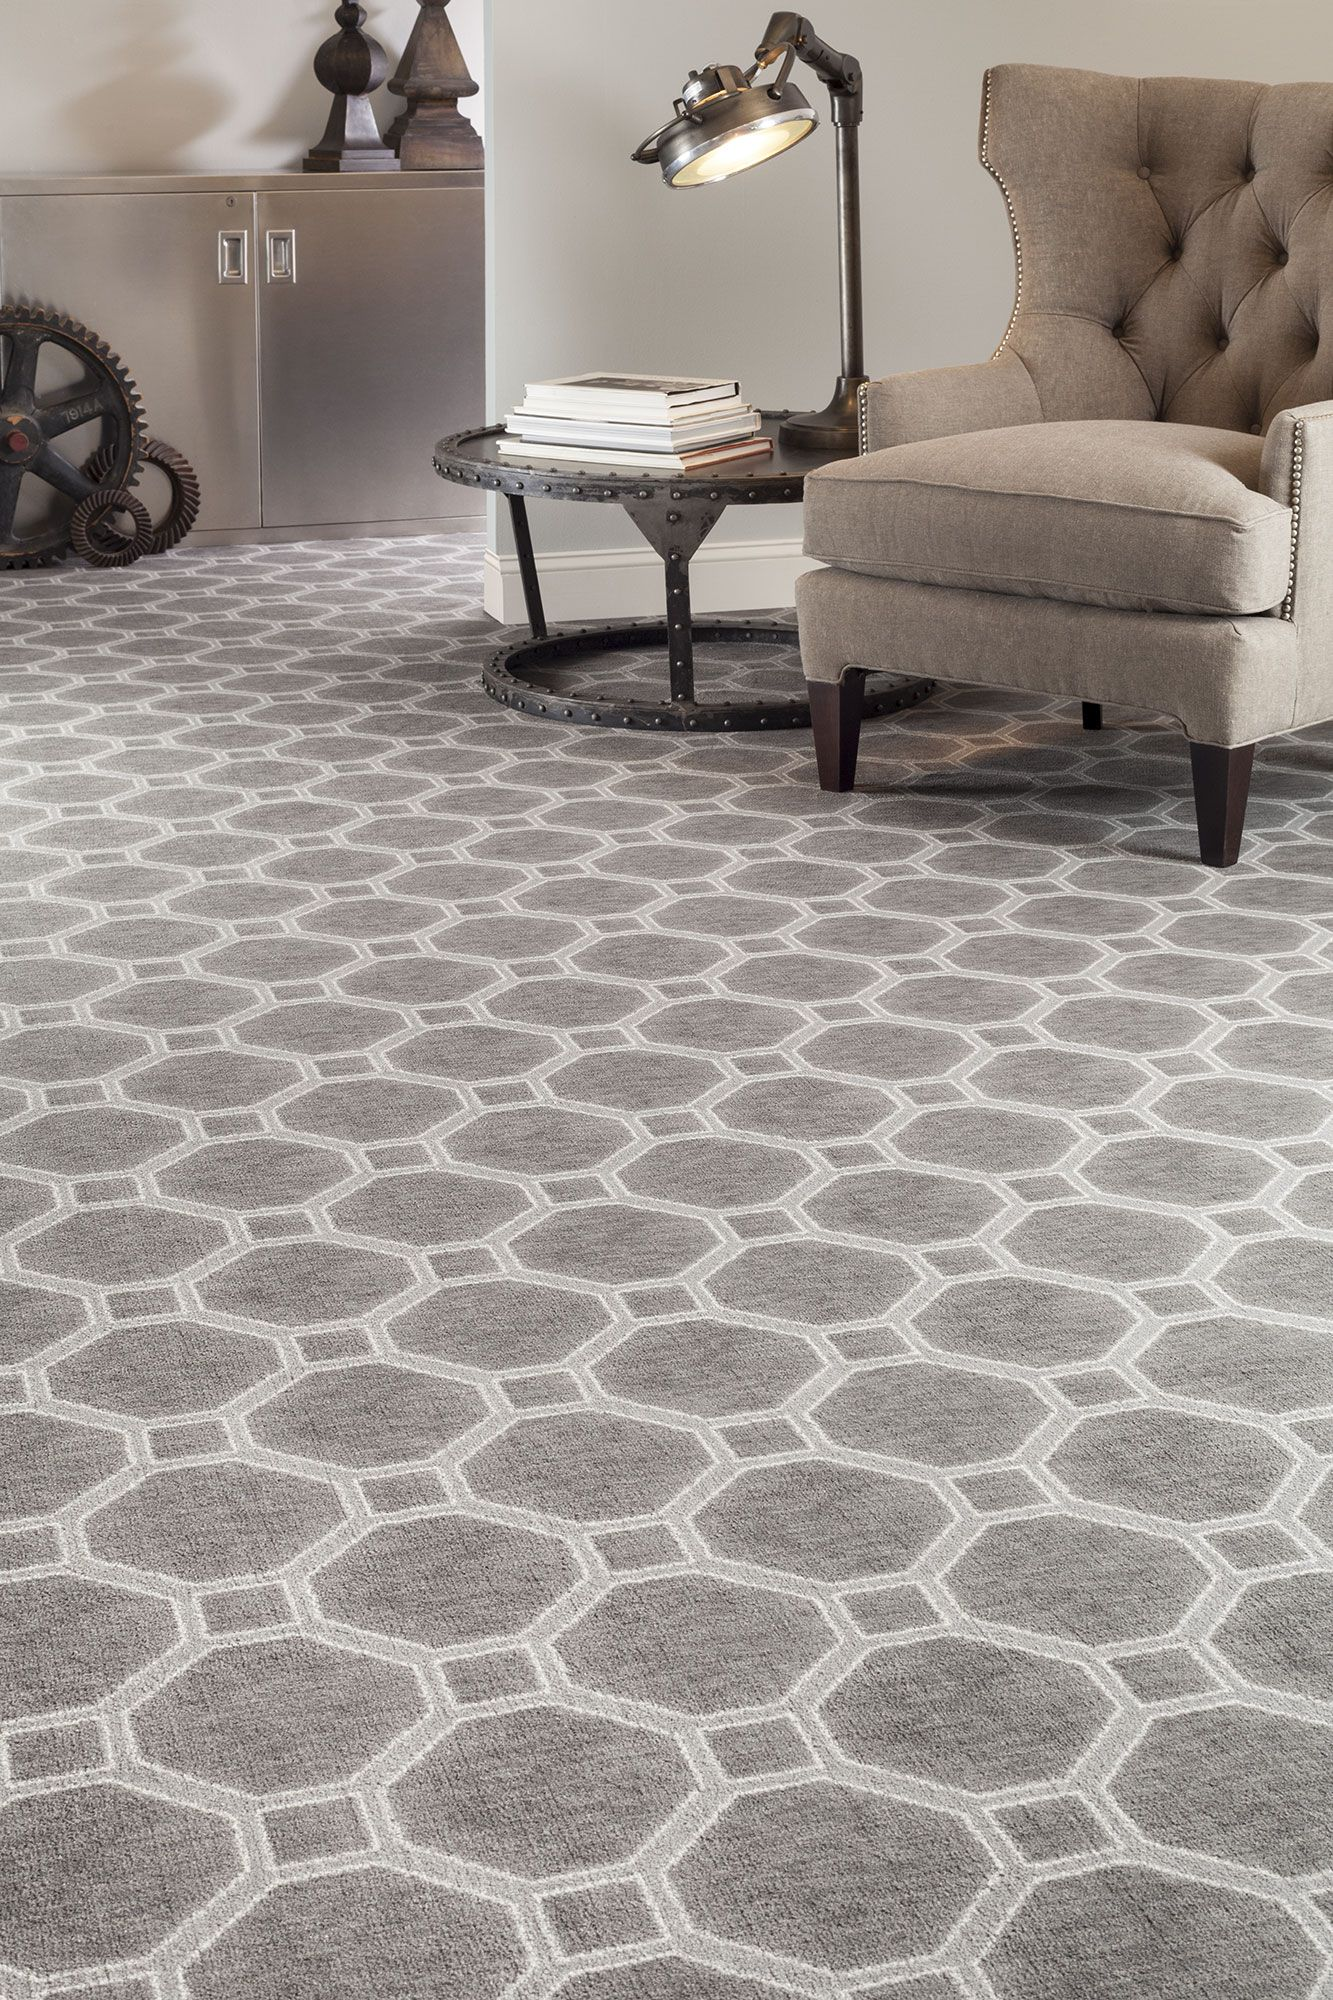 Hexagon Patterned Carpet Gray Bold Flooring With Neutral